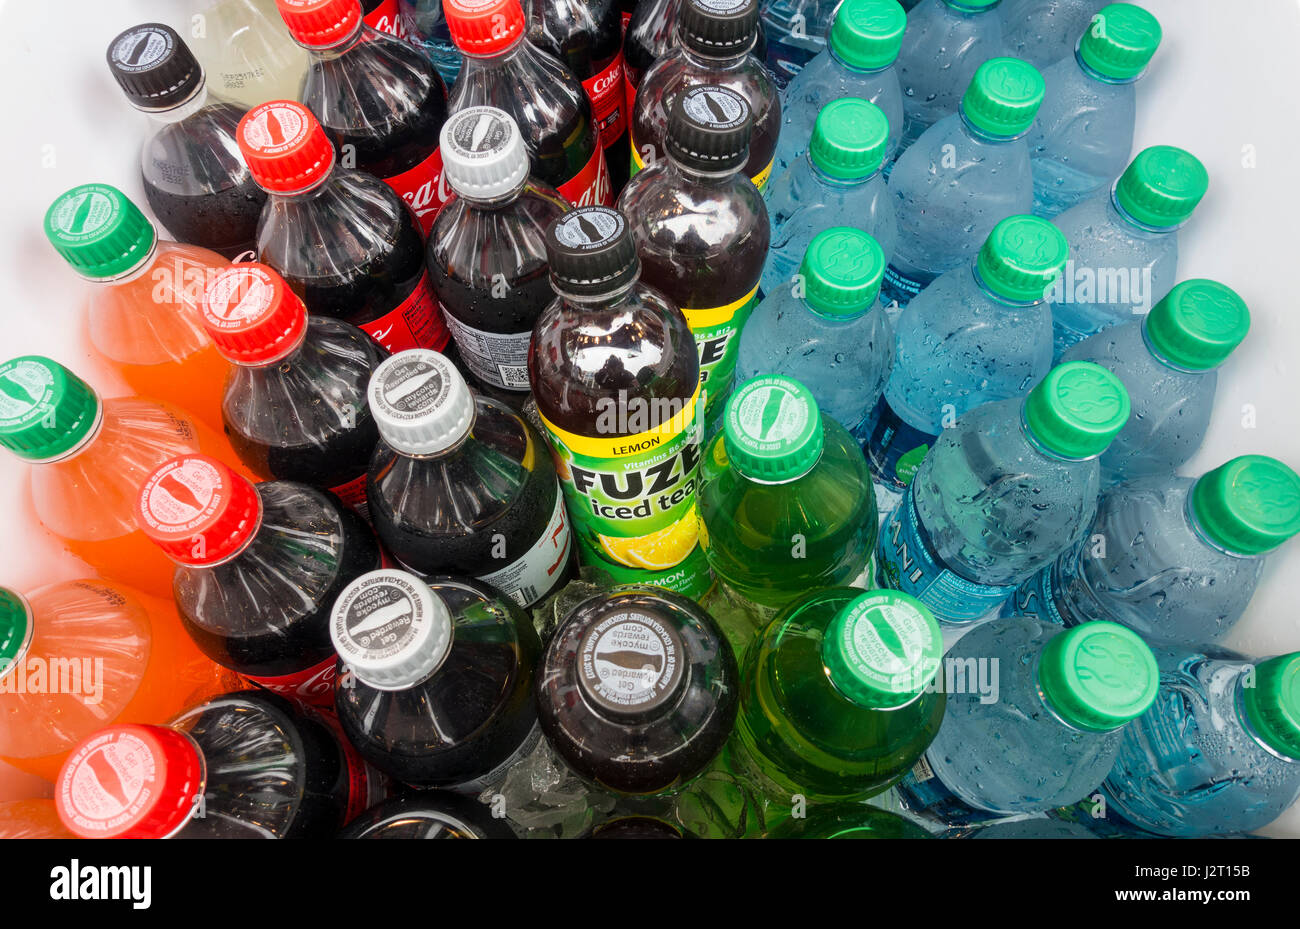 A selection of soft drinks in a cooler, including ice tea - Stock Image